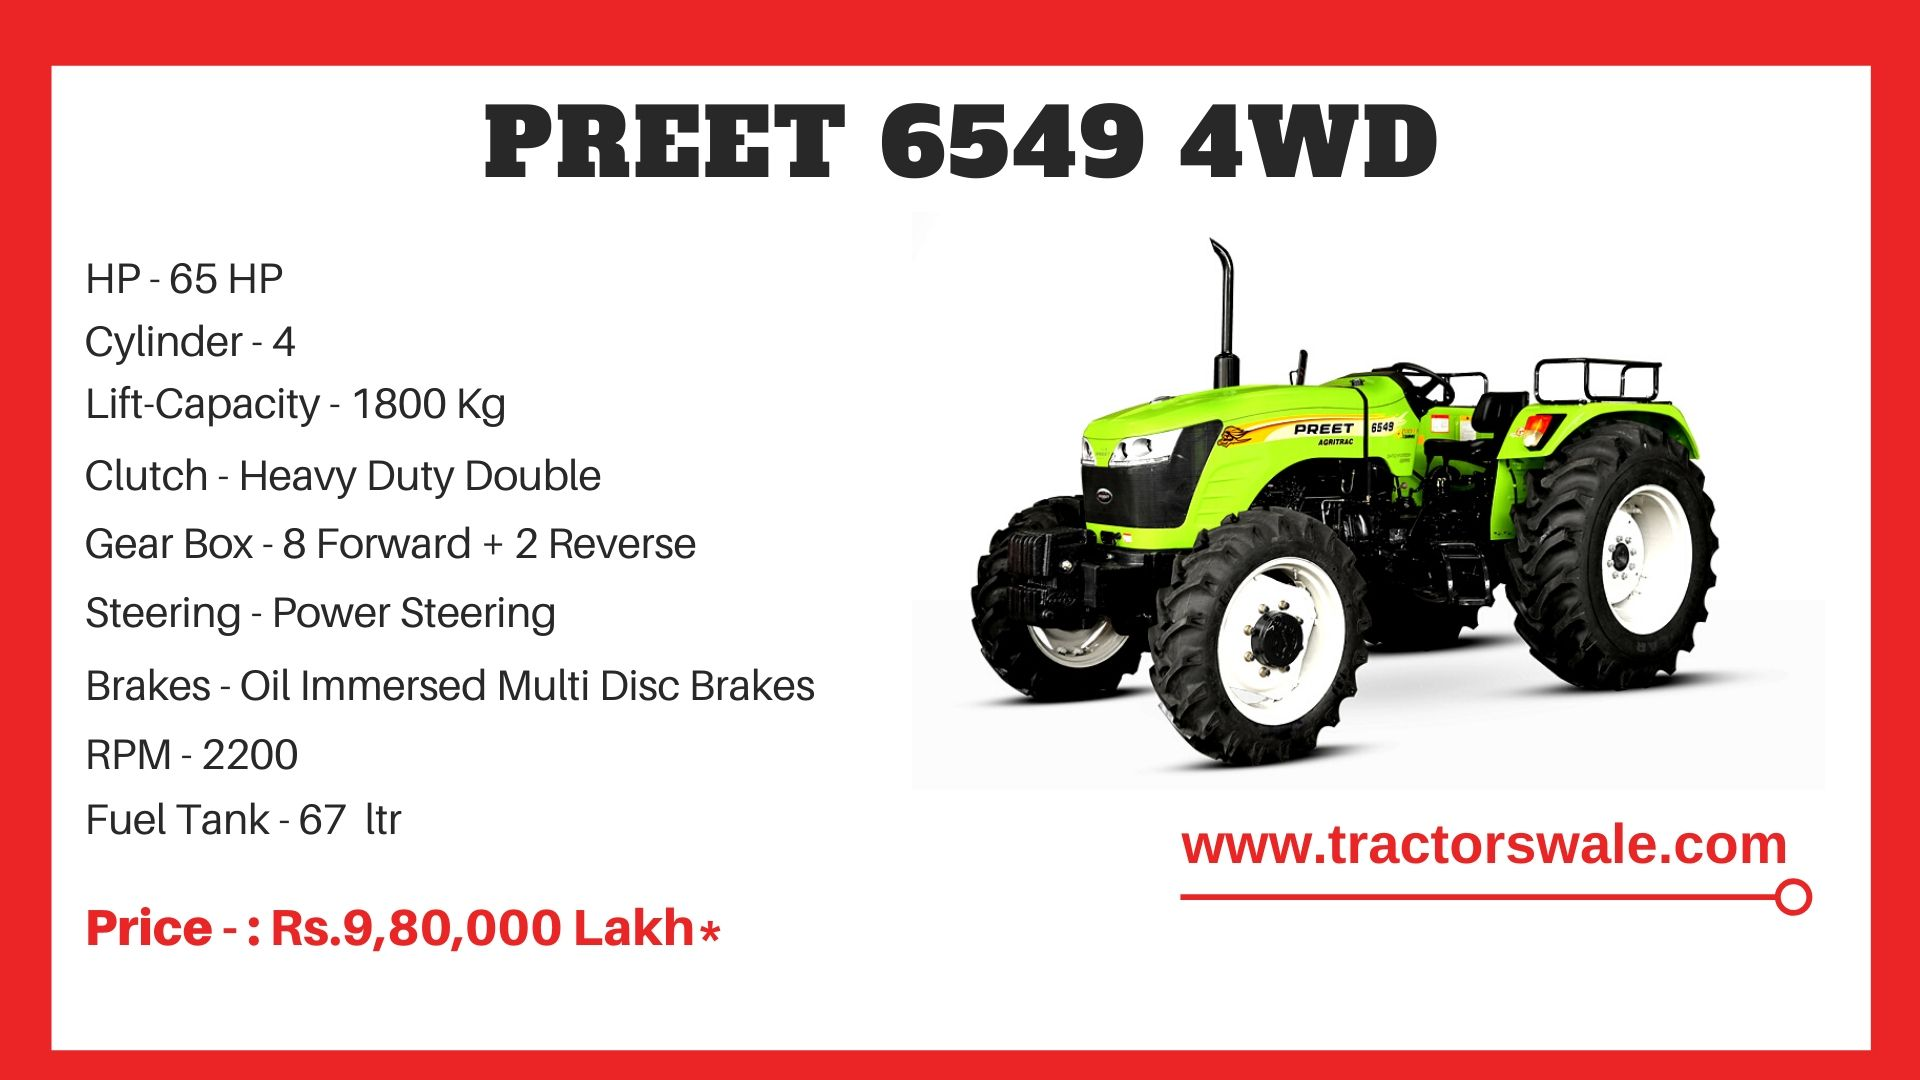 Preet 6549 4WD tractor price